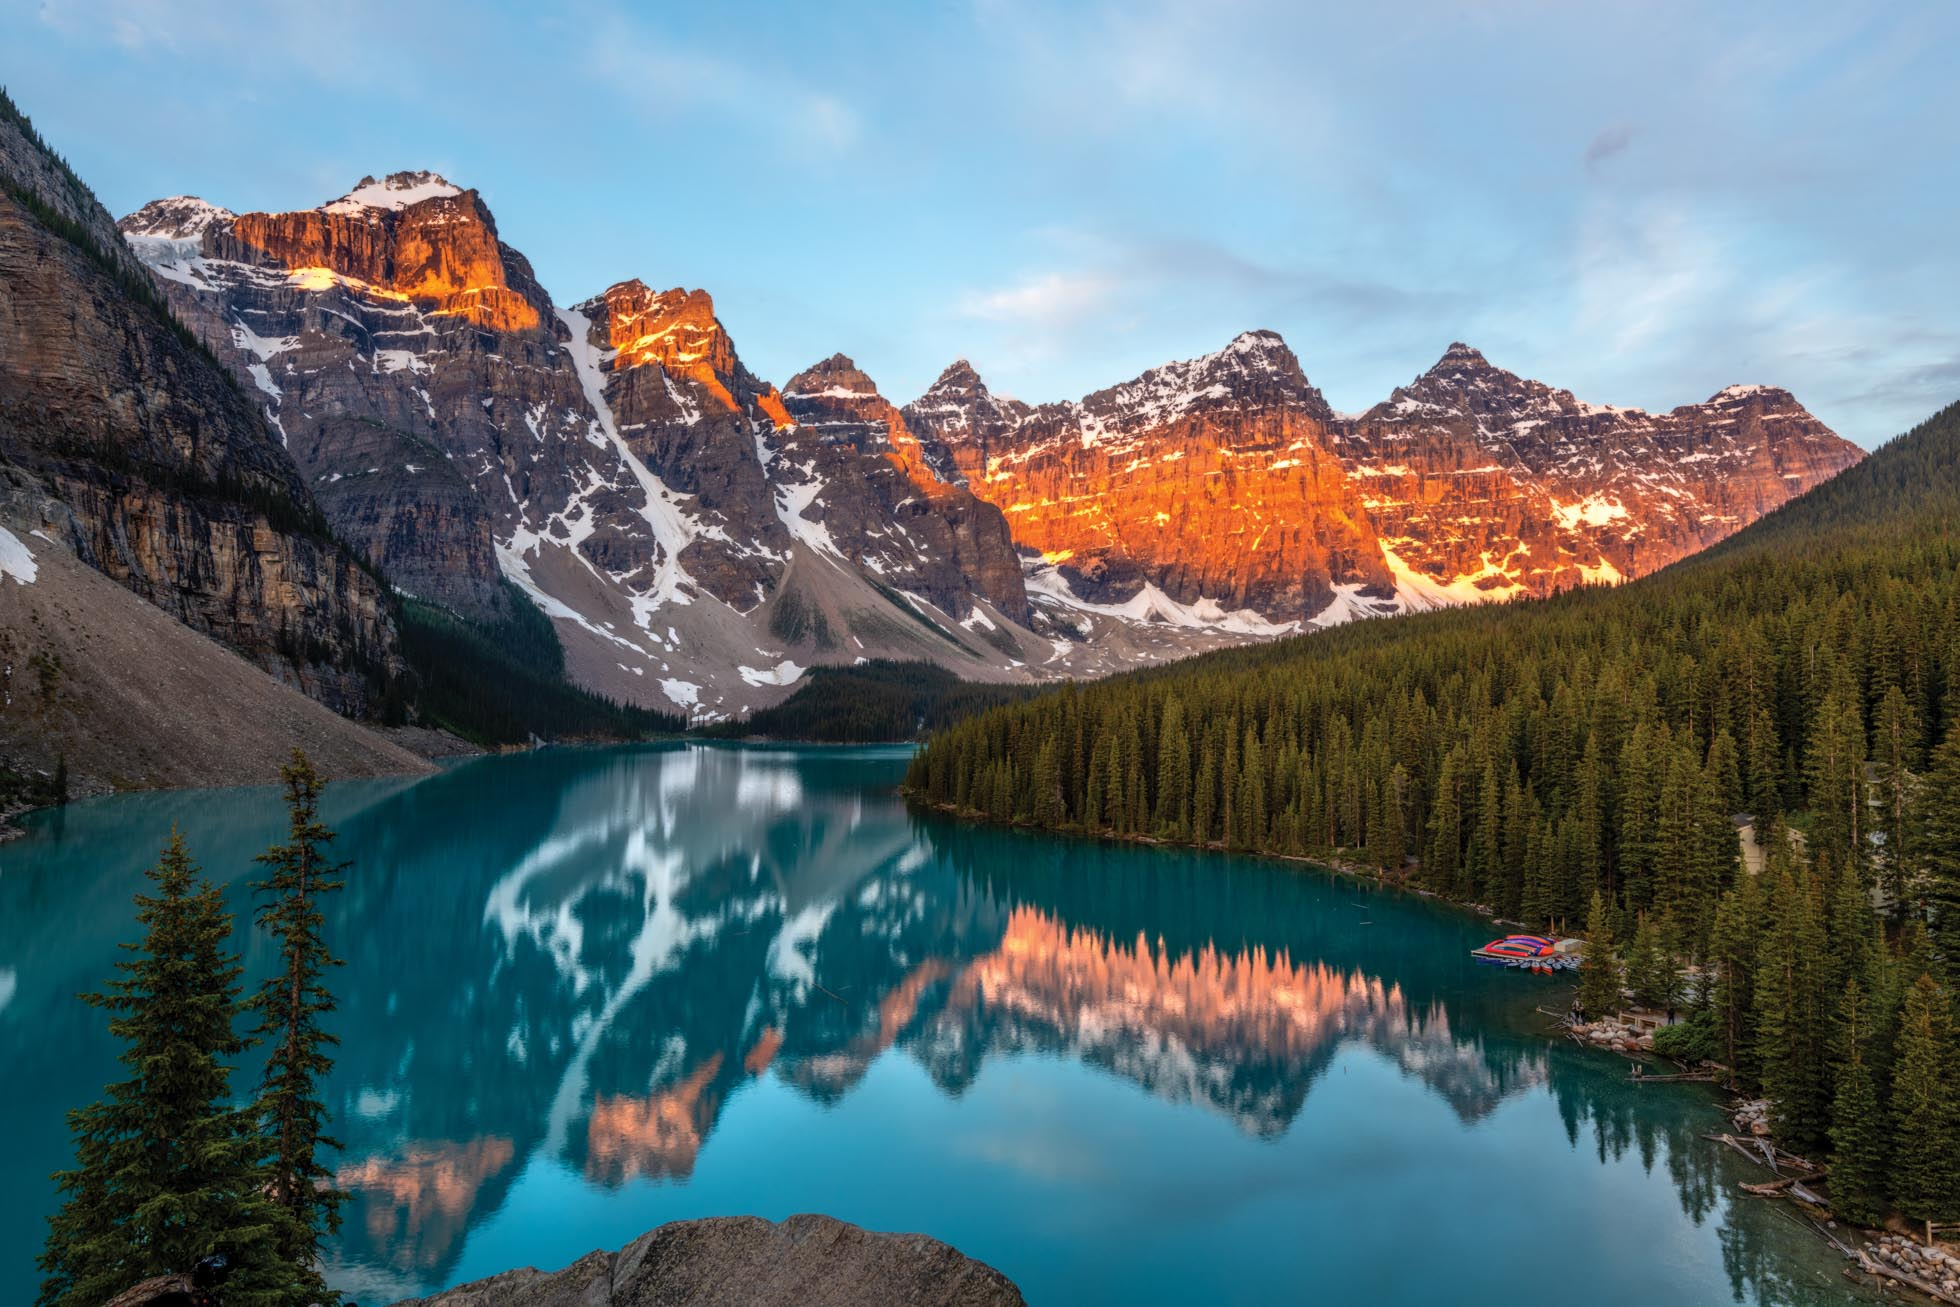 When I visited Moraine Lake in the summer of 2017, I was with my family and did not have the opportunity to capture a sunrise here. In June, my girls, Gina & Addie, & I made sure to make it there for this beautiful reflection of alpenglow.